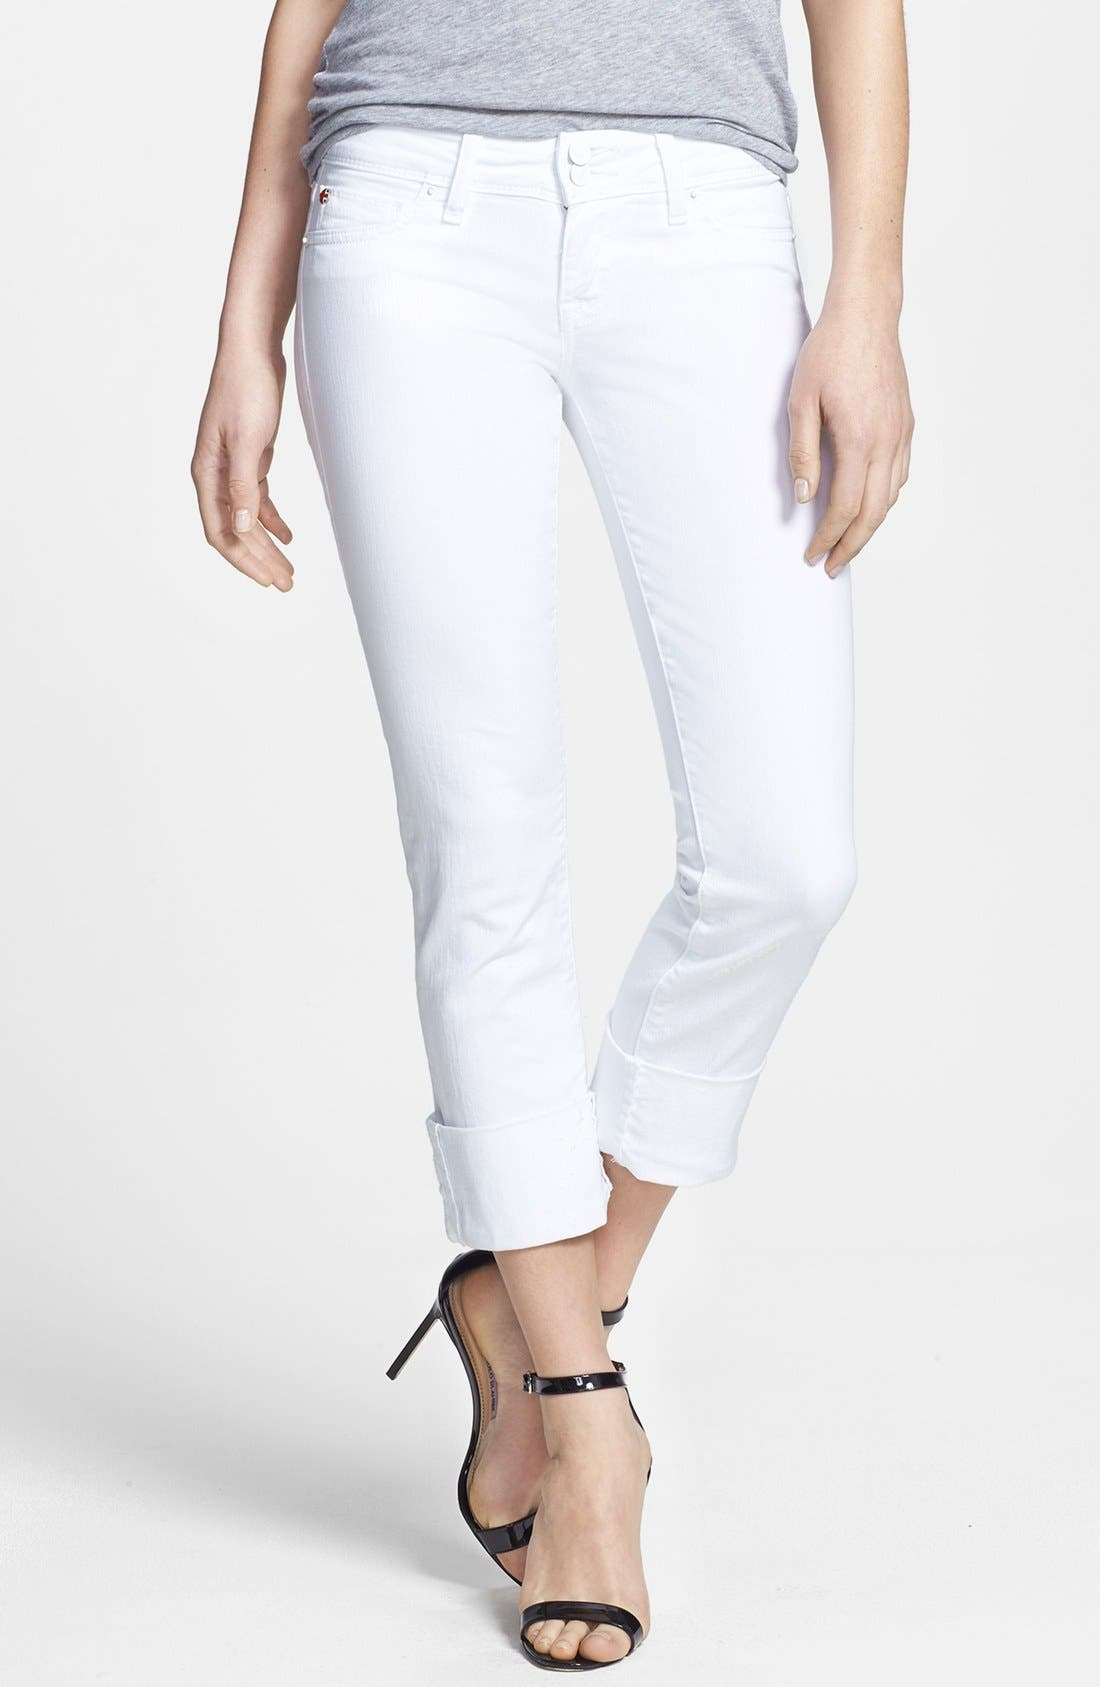 Main Image - Hudson Jeans 'Ginny Crop' Stretch Skinny Jeans (White)